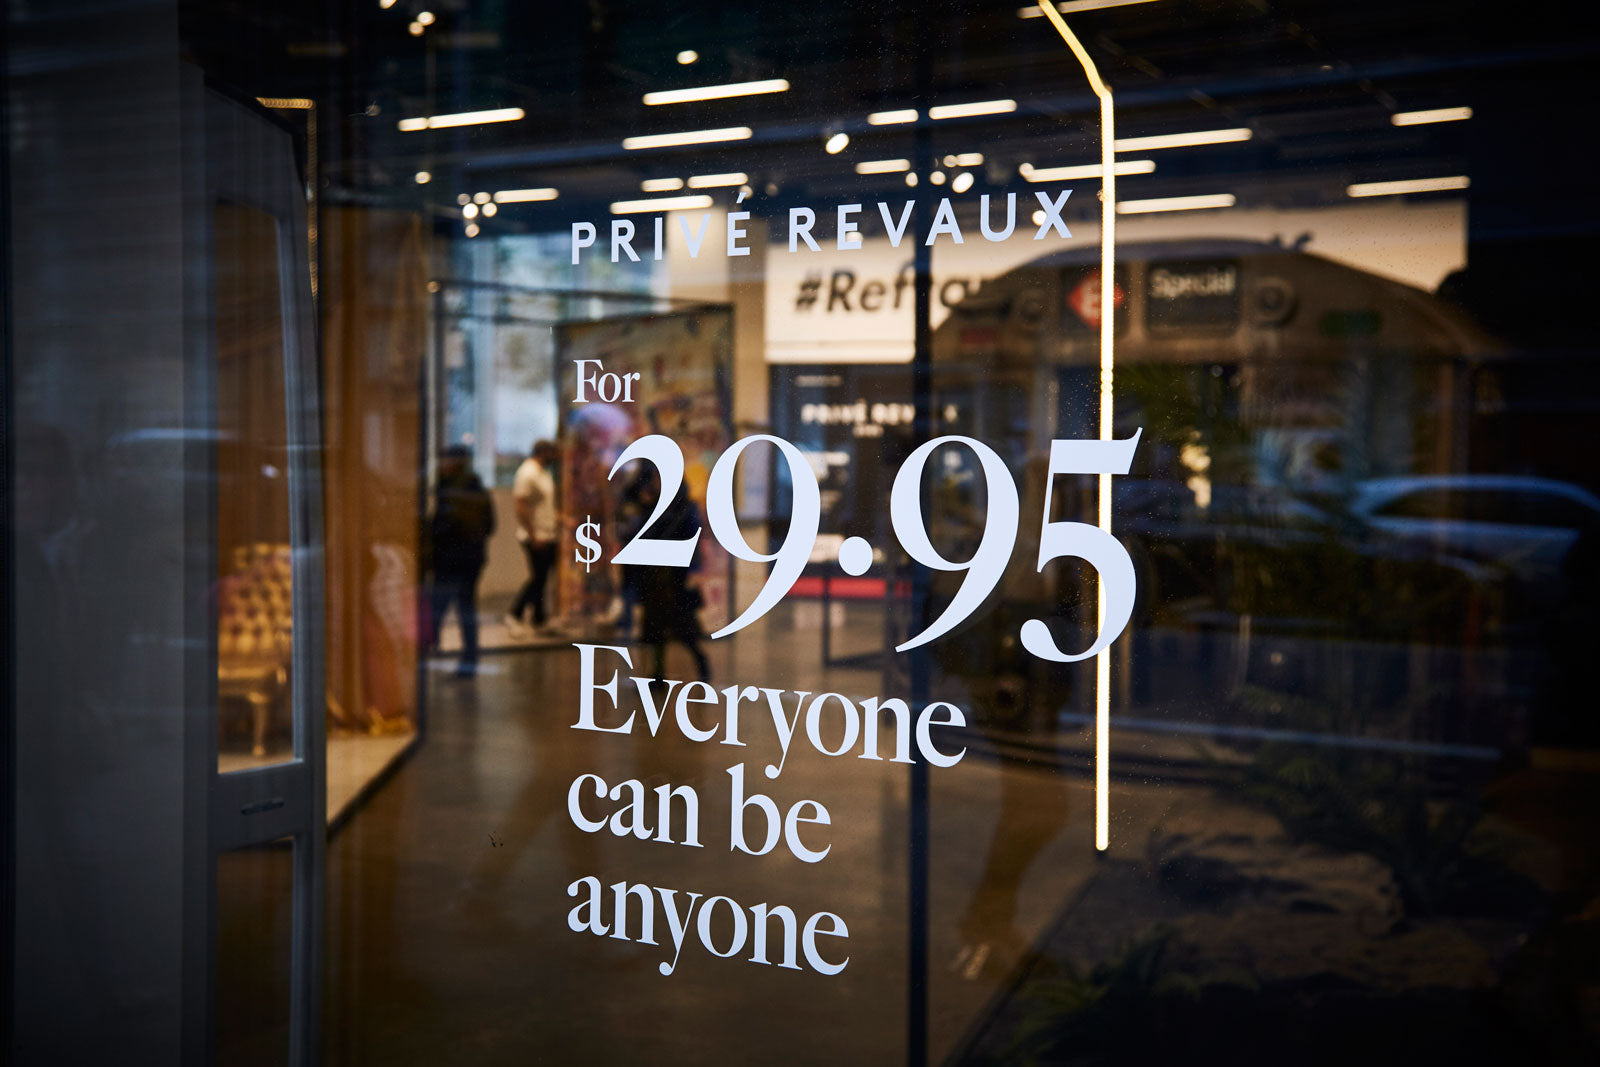 A Privé Revaux kiosk coming to a mall near you!